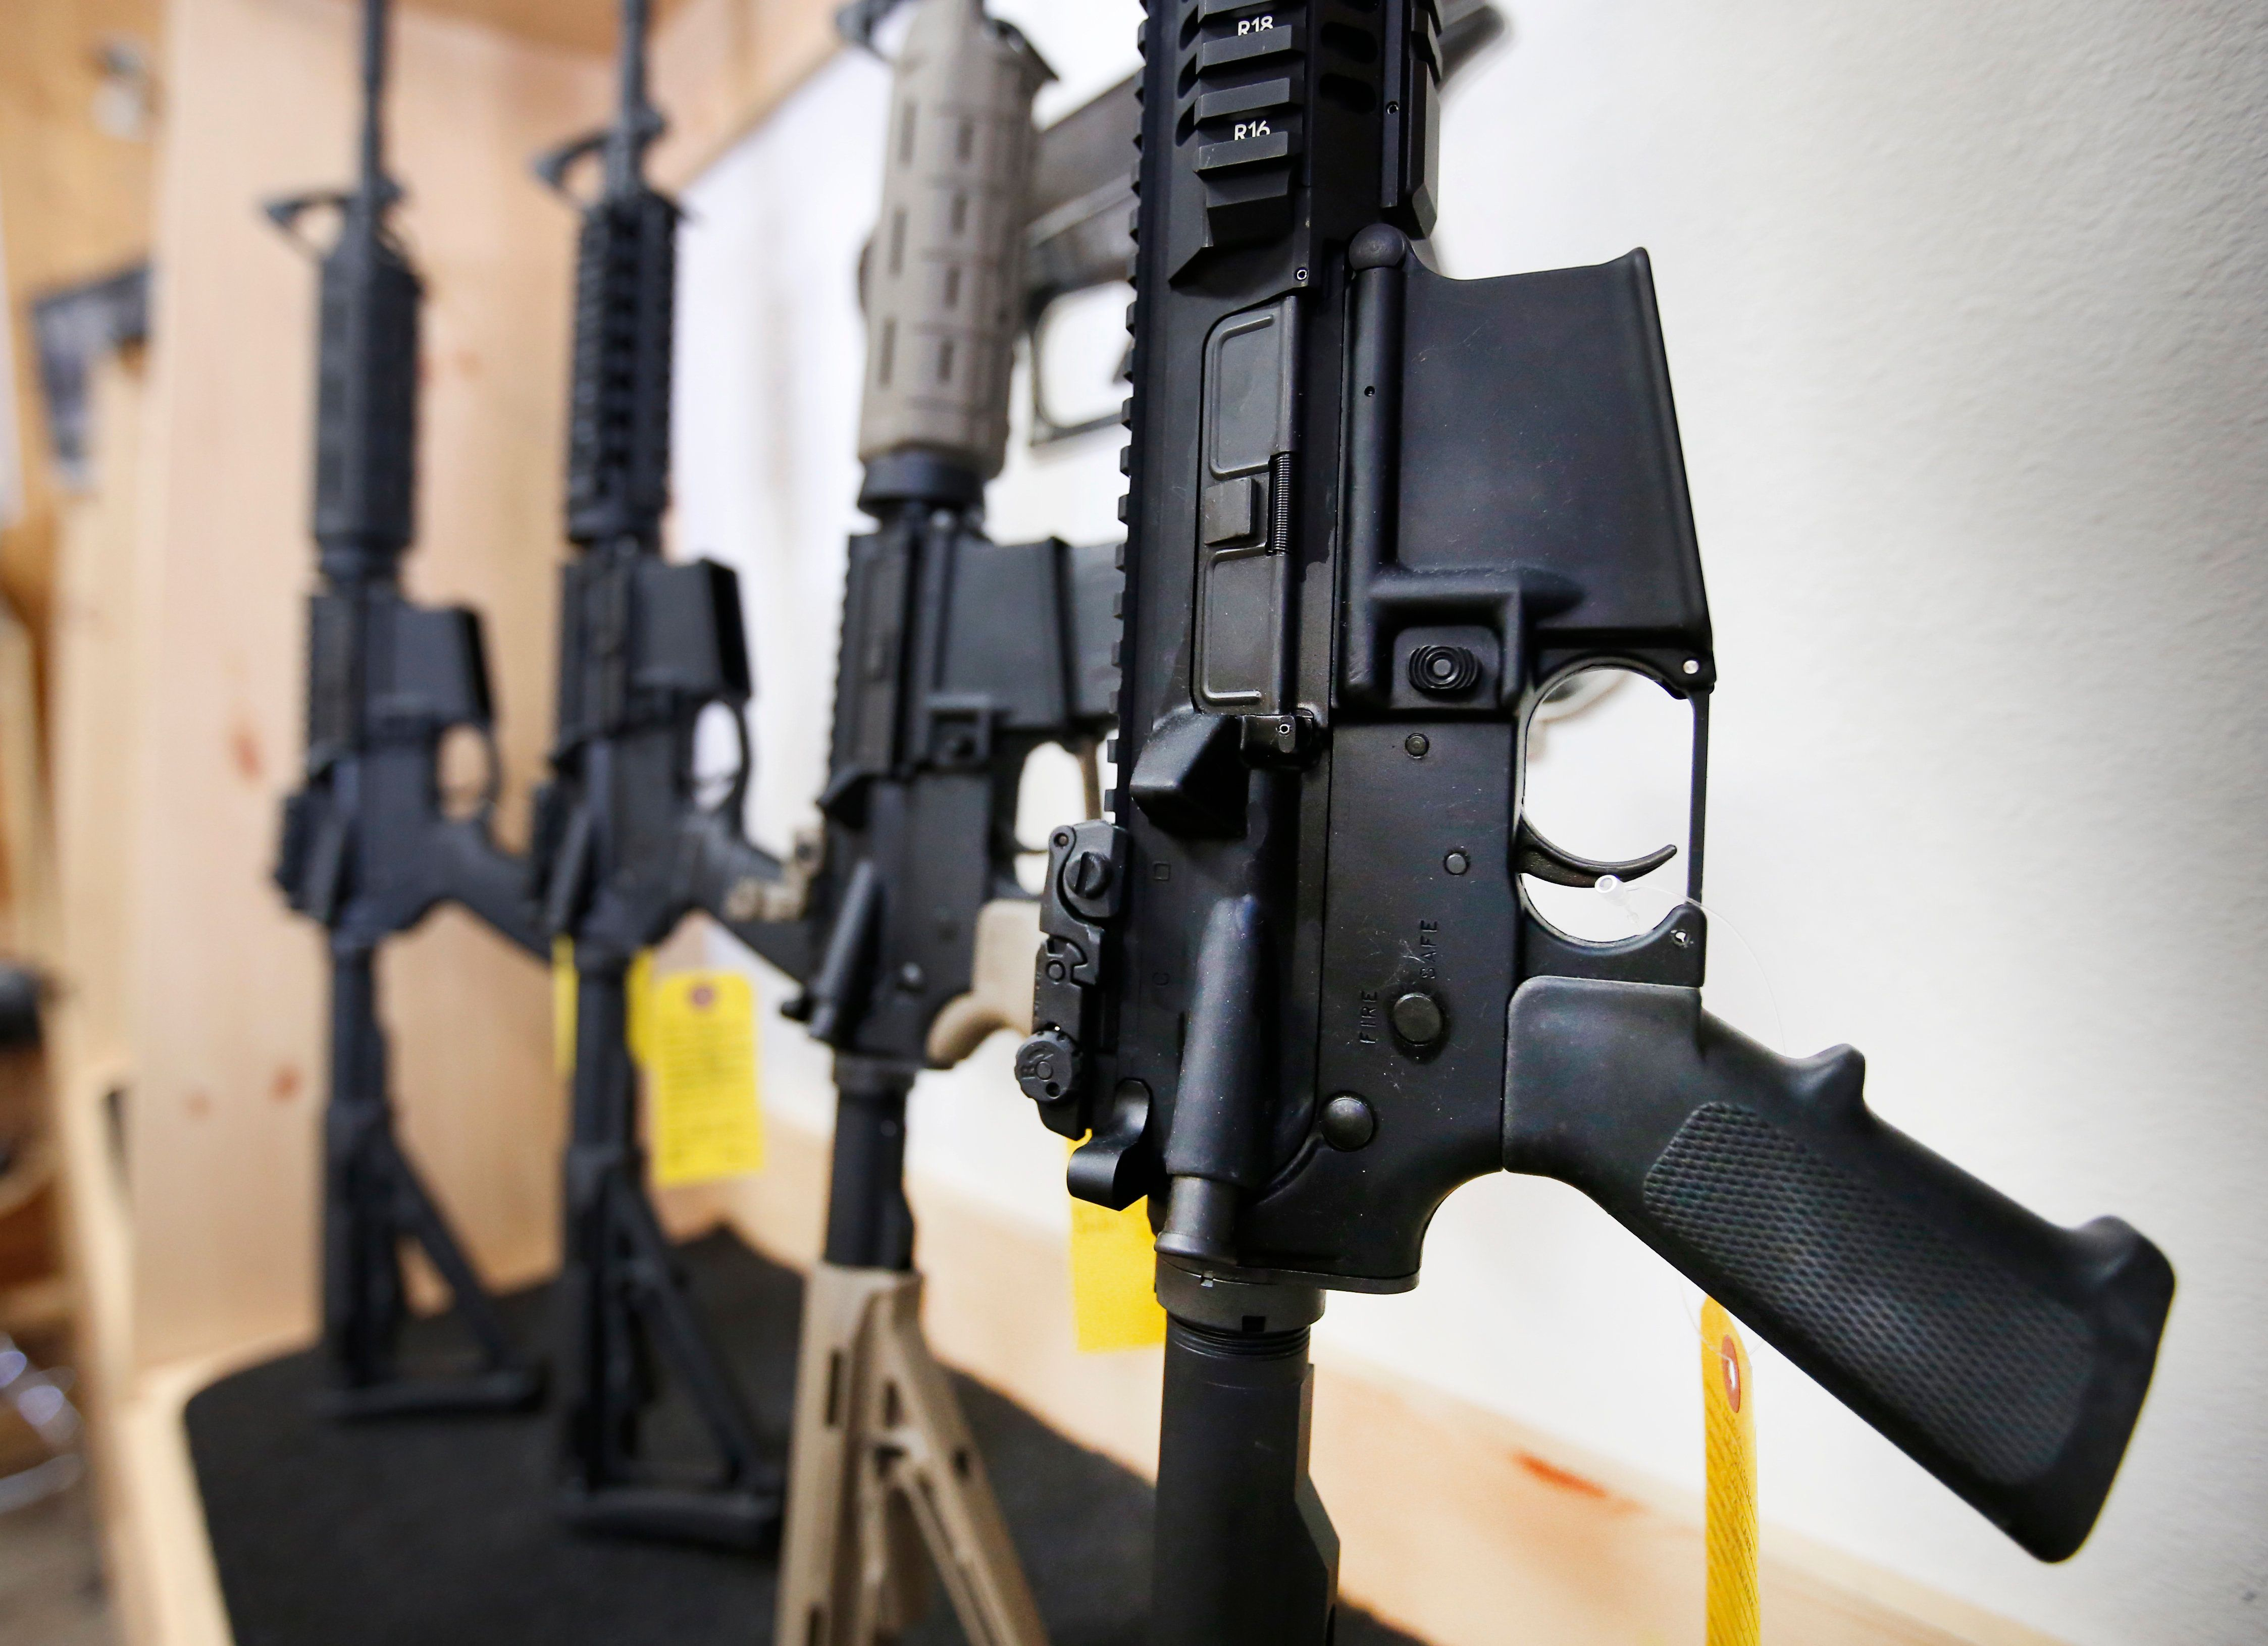 SPRINGVILLE, UT - JUNE 17:  AR-15 semi-automatic guns are on display for sale at Action Target on June 17, 2016 in Springville, Utah. Semi-automatics are in the news again after the nightclub shooting in Orlando F;lord last week. (Photo by George Frey/Getty Images)